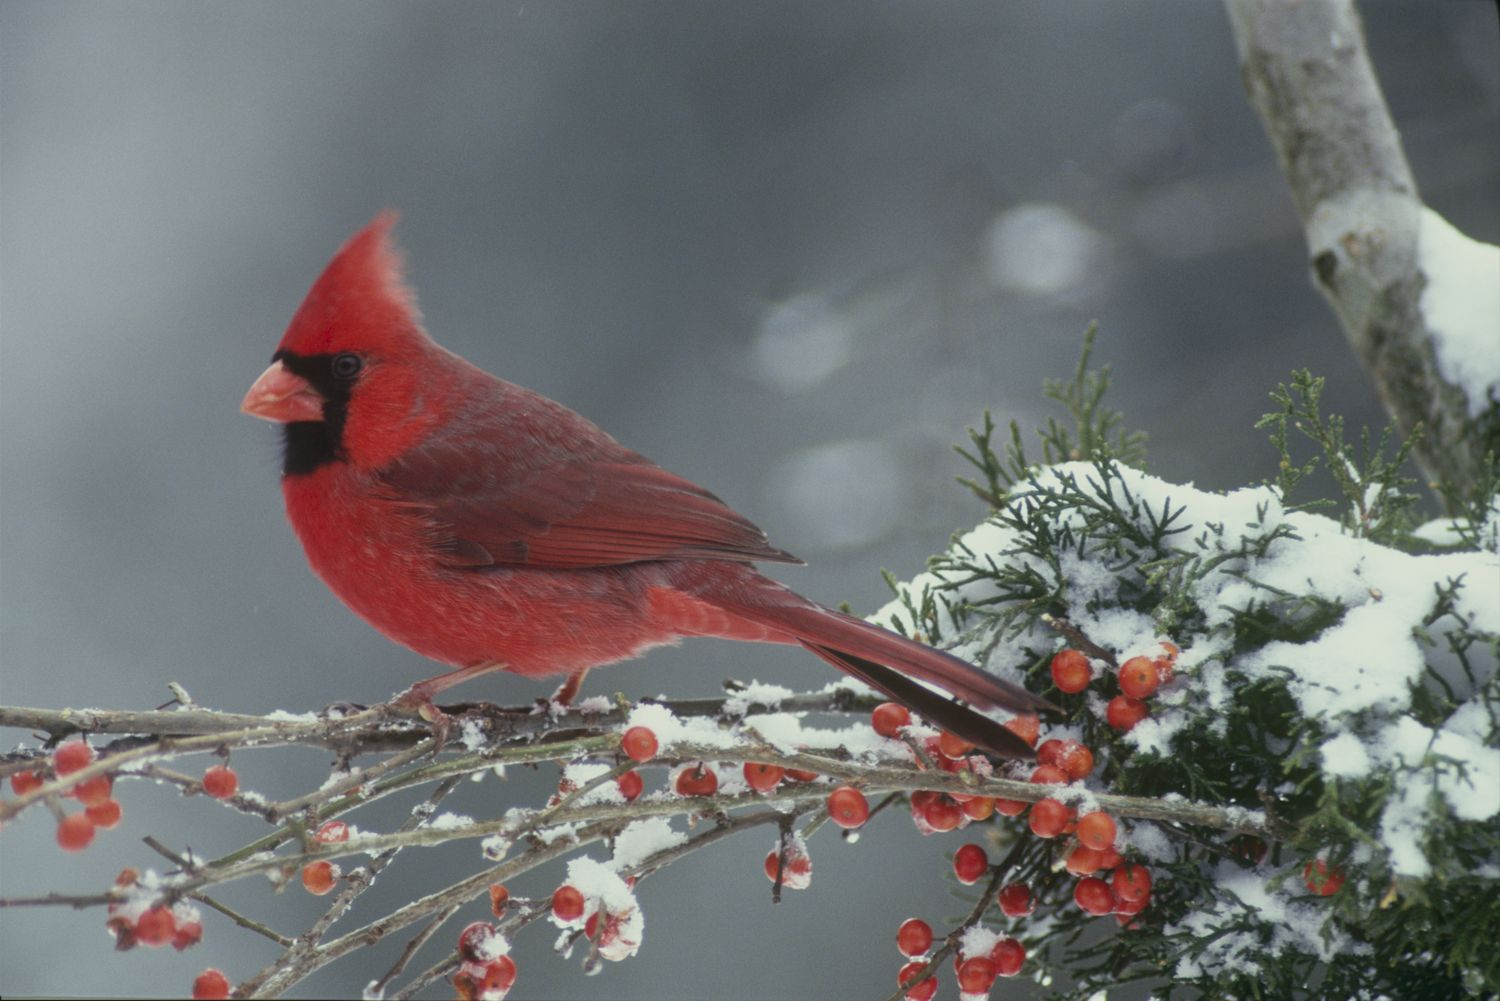 Red birds in snow november 2010 mother daughter press - Winter cardinal background ...